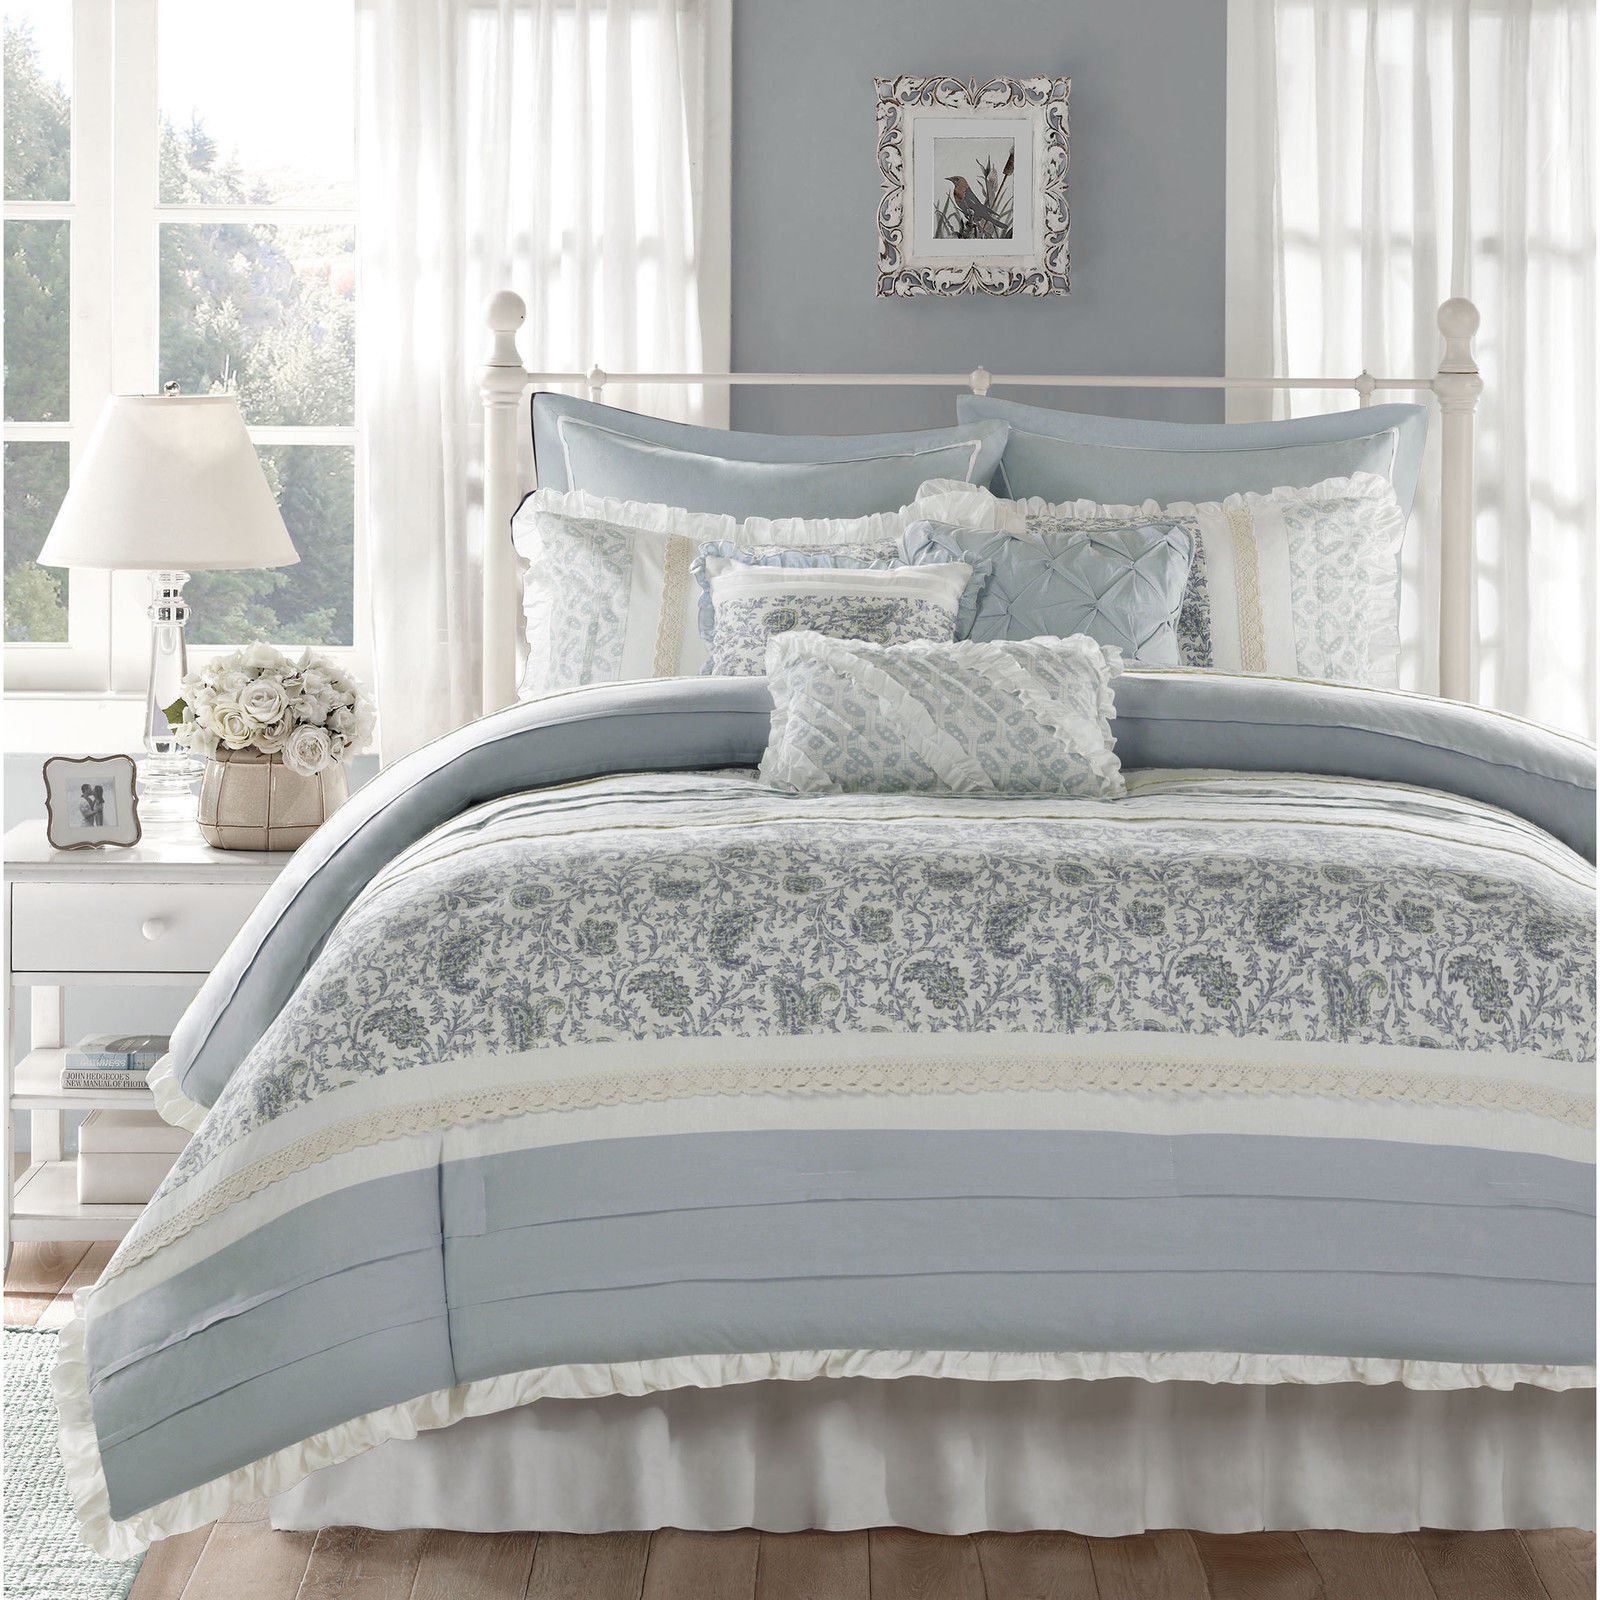 BEAUTIFUL COTTAGE blu bianca grigio COUNTRY LACE RUFFLE COTTON DUVET COVER SET NEW